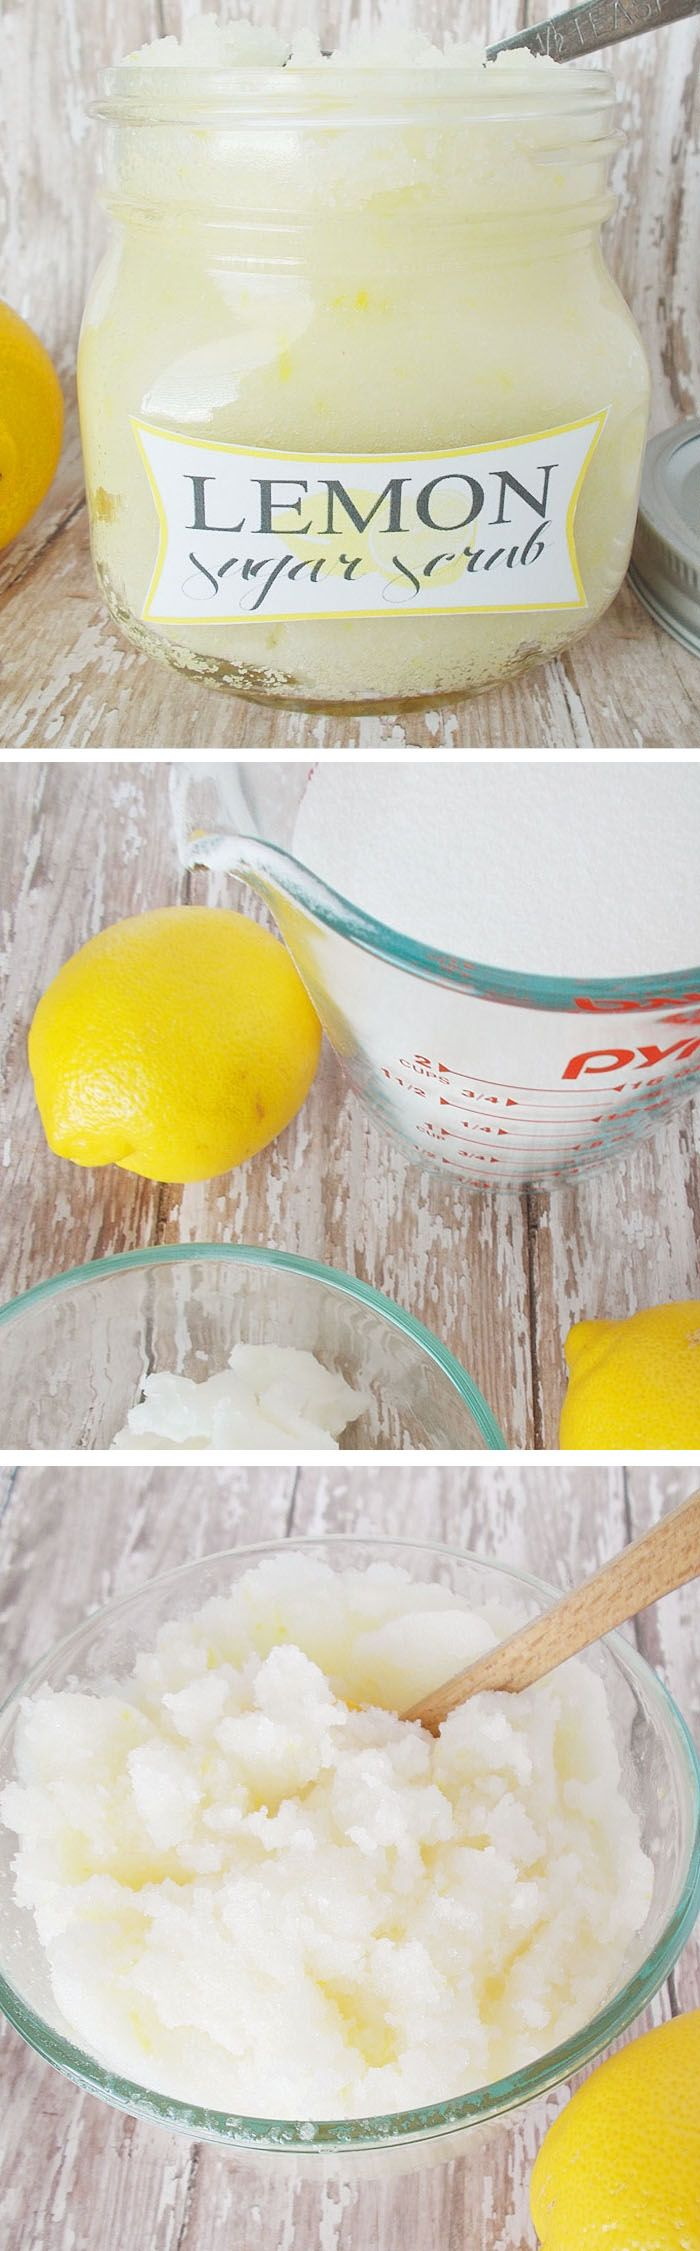 Homemade lemon sugar scrub -such a great gift idea! Makes your hands so soft!